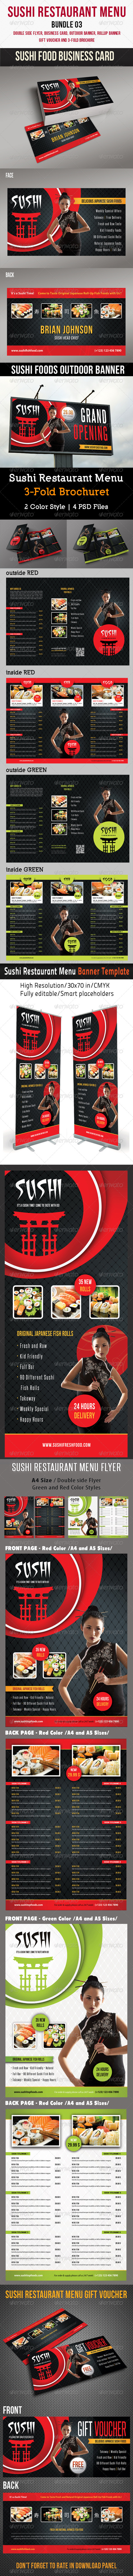 Sushi Restaurant Menu Bundle 03